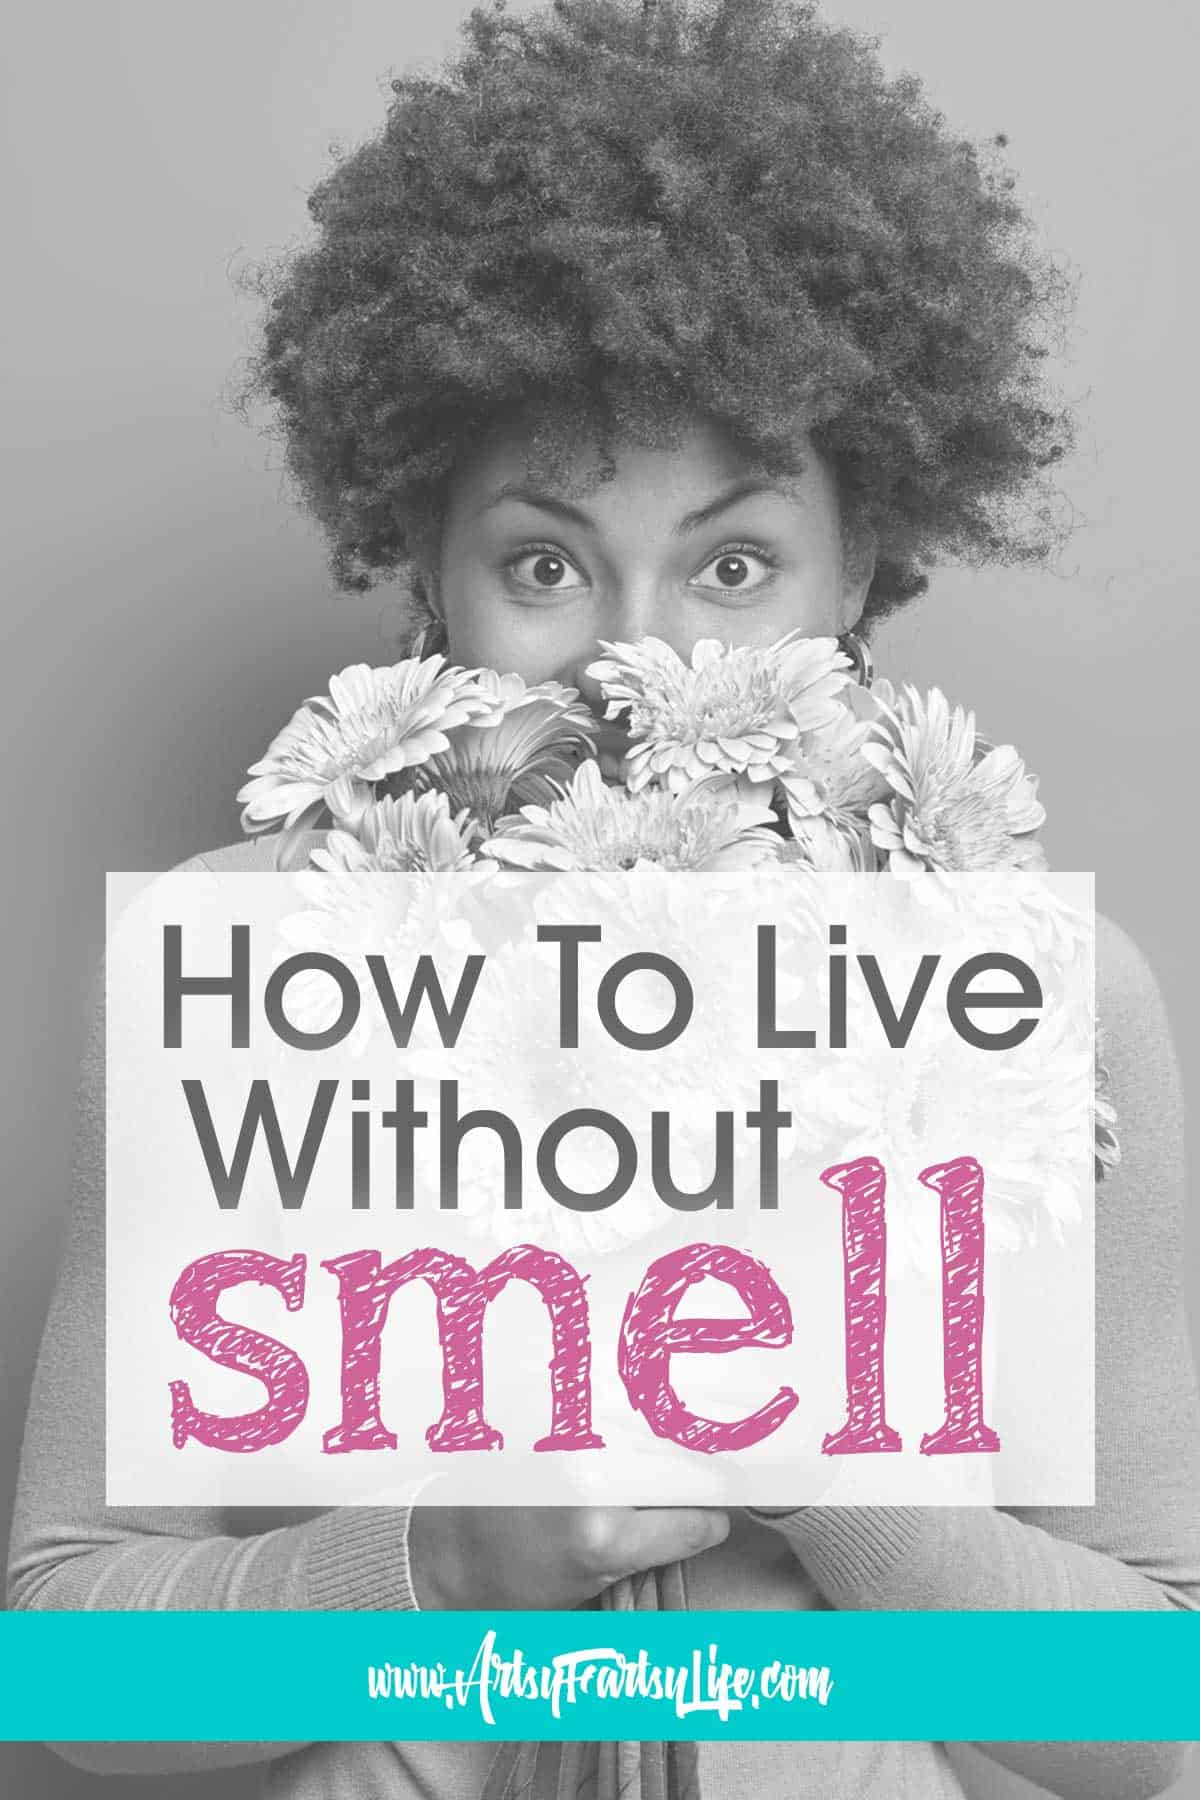 Living My Whole Life Without Smell